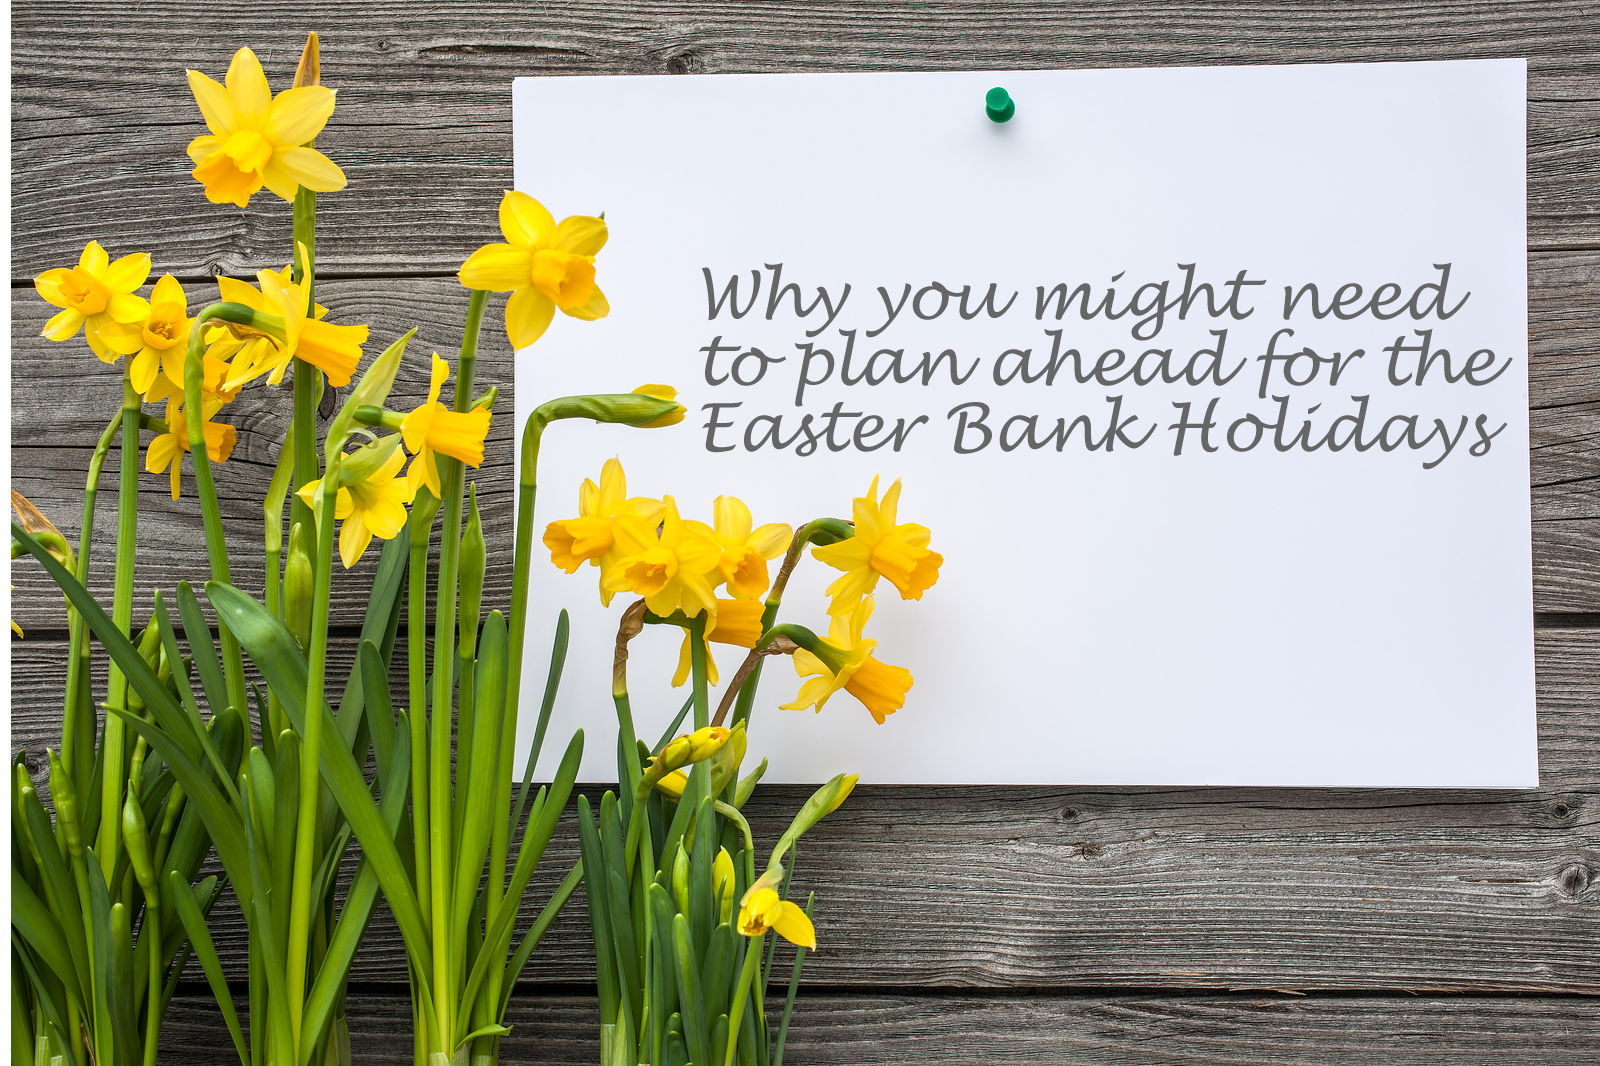 Why employers may need to plan well ahead for Easter 2016